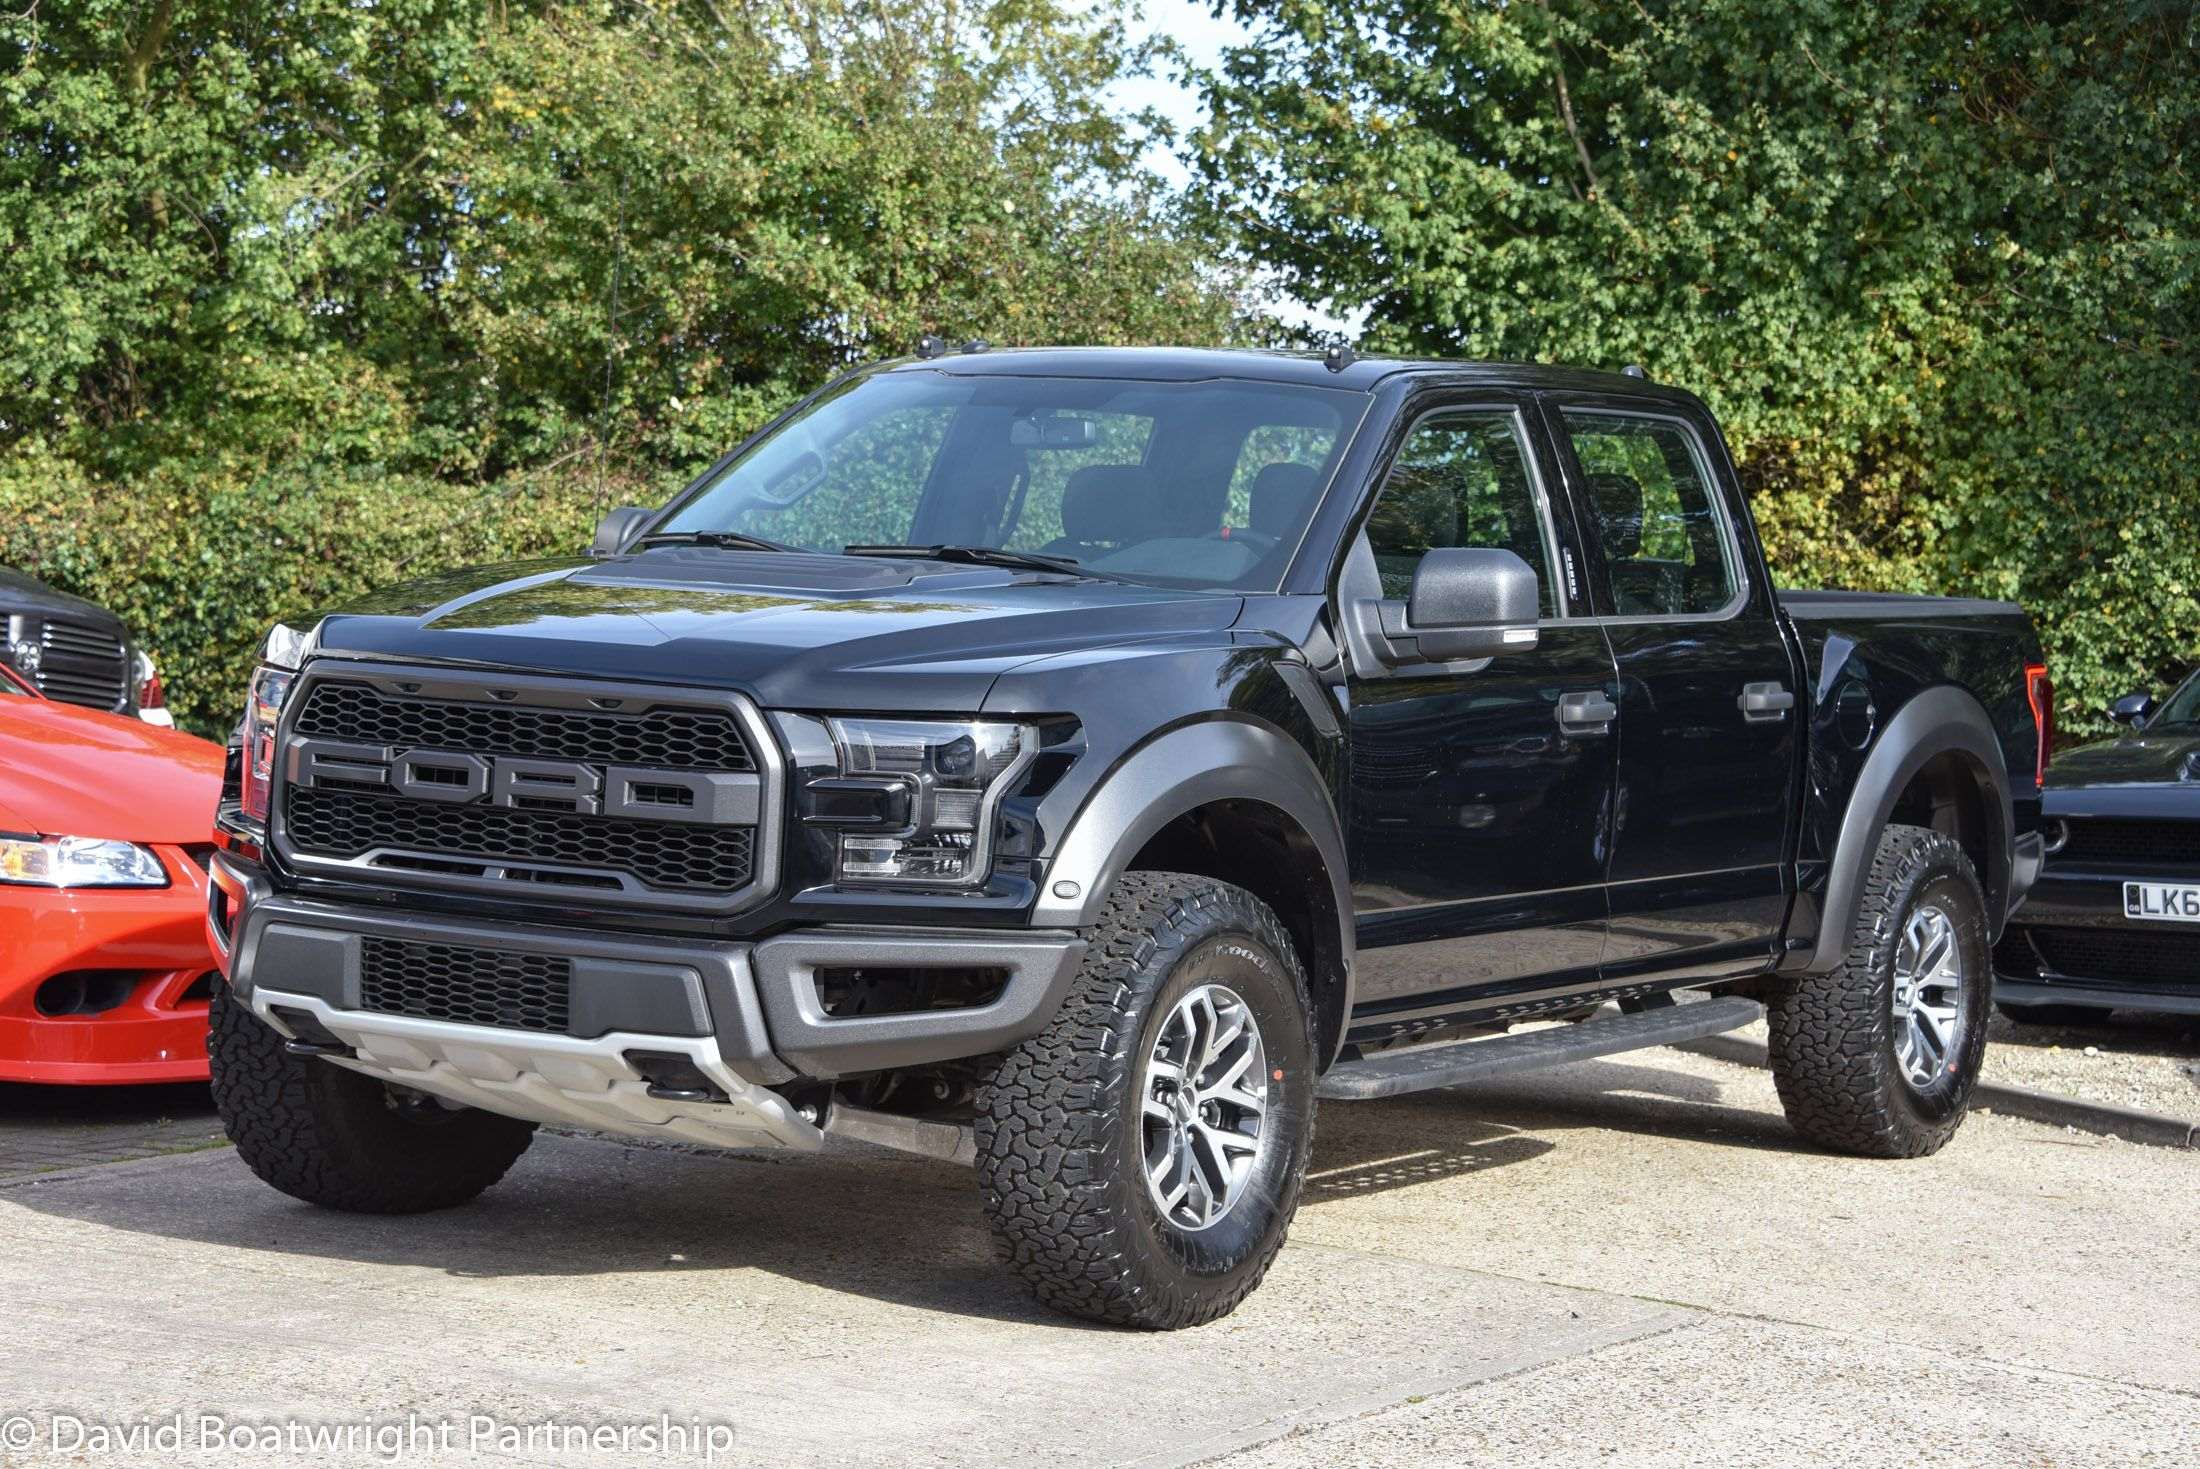 New F150 Raptor Supercrew Www Boatwright Co Uk Raptor Blackraptor Newraptor F150raptor David Boatwright Partners American Pickup Trucks F150 Built Truck